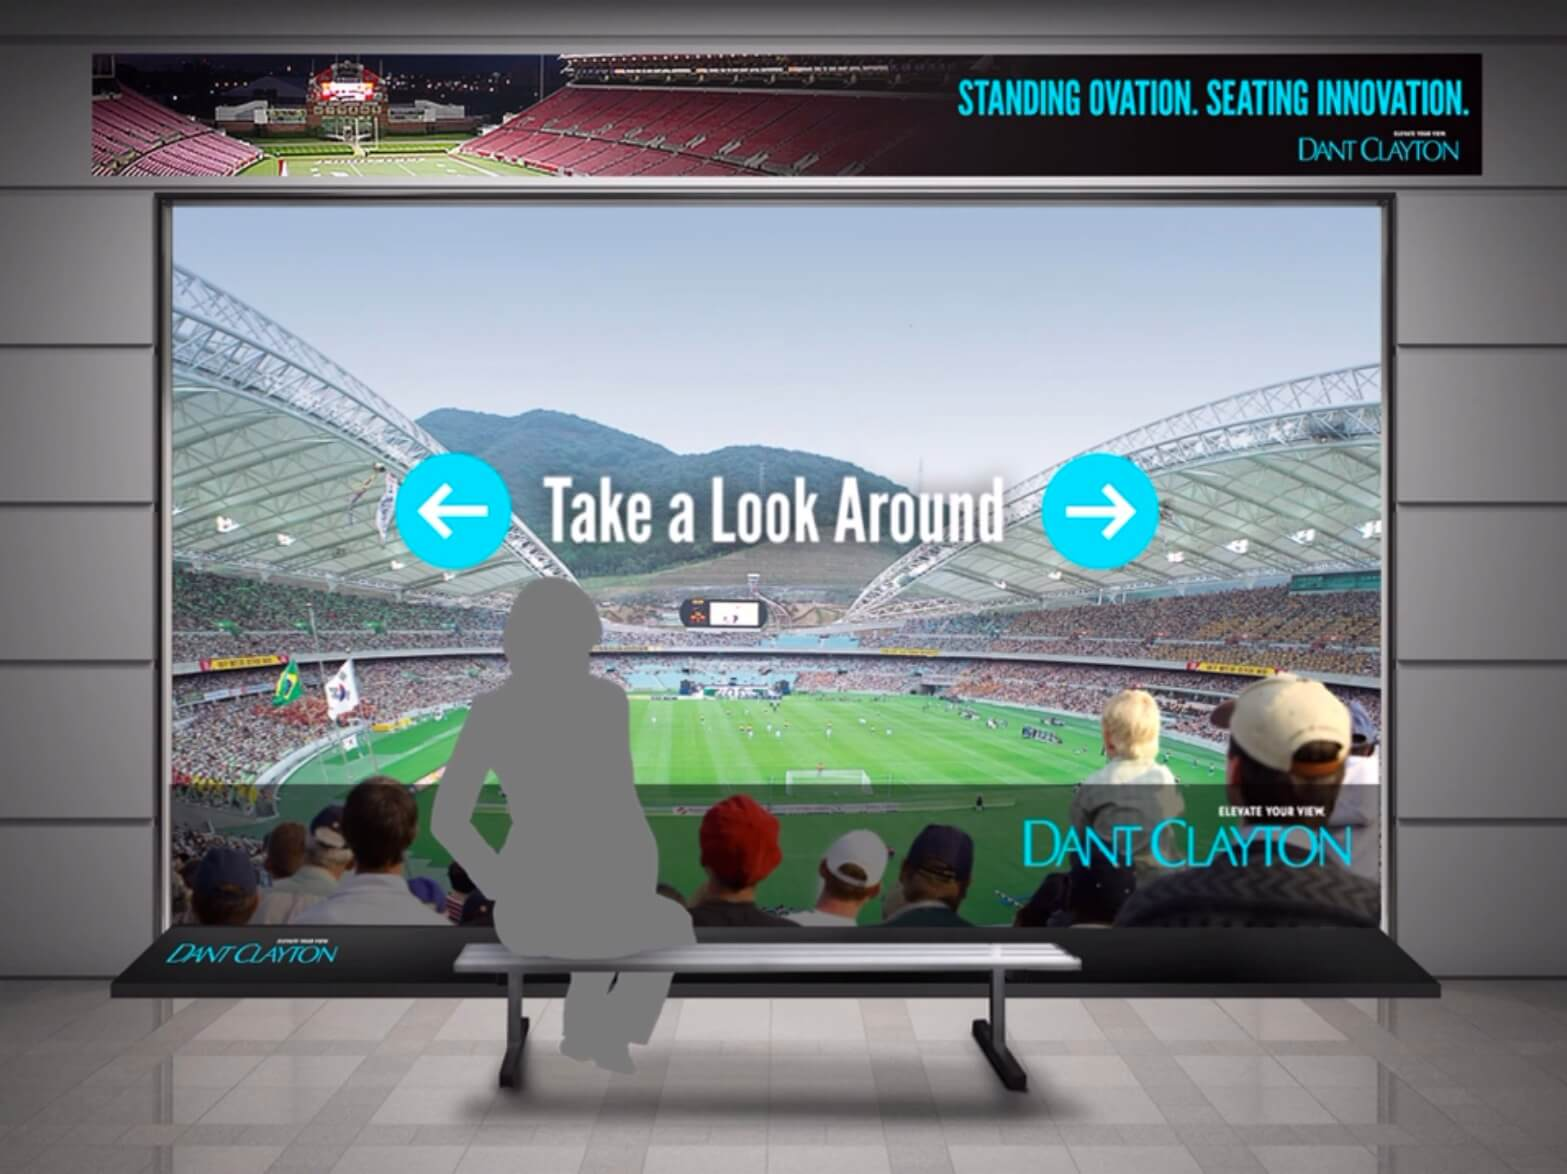 An architectural mockup of a Dant Clayton interactive kiosk